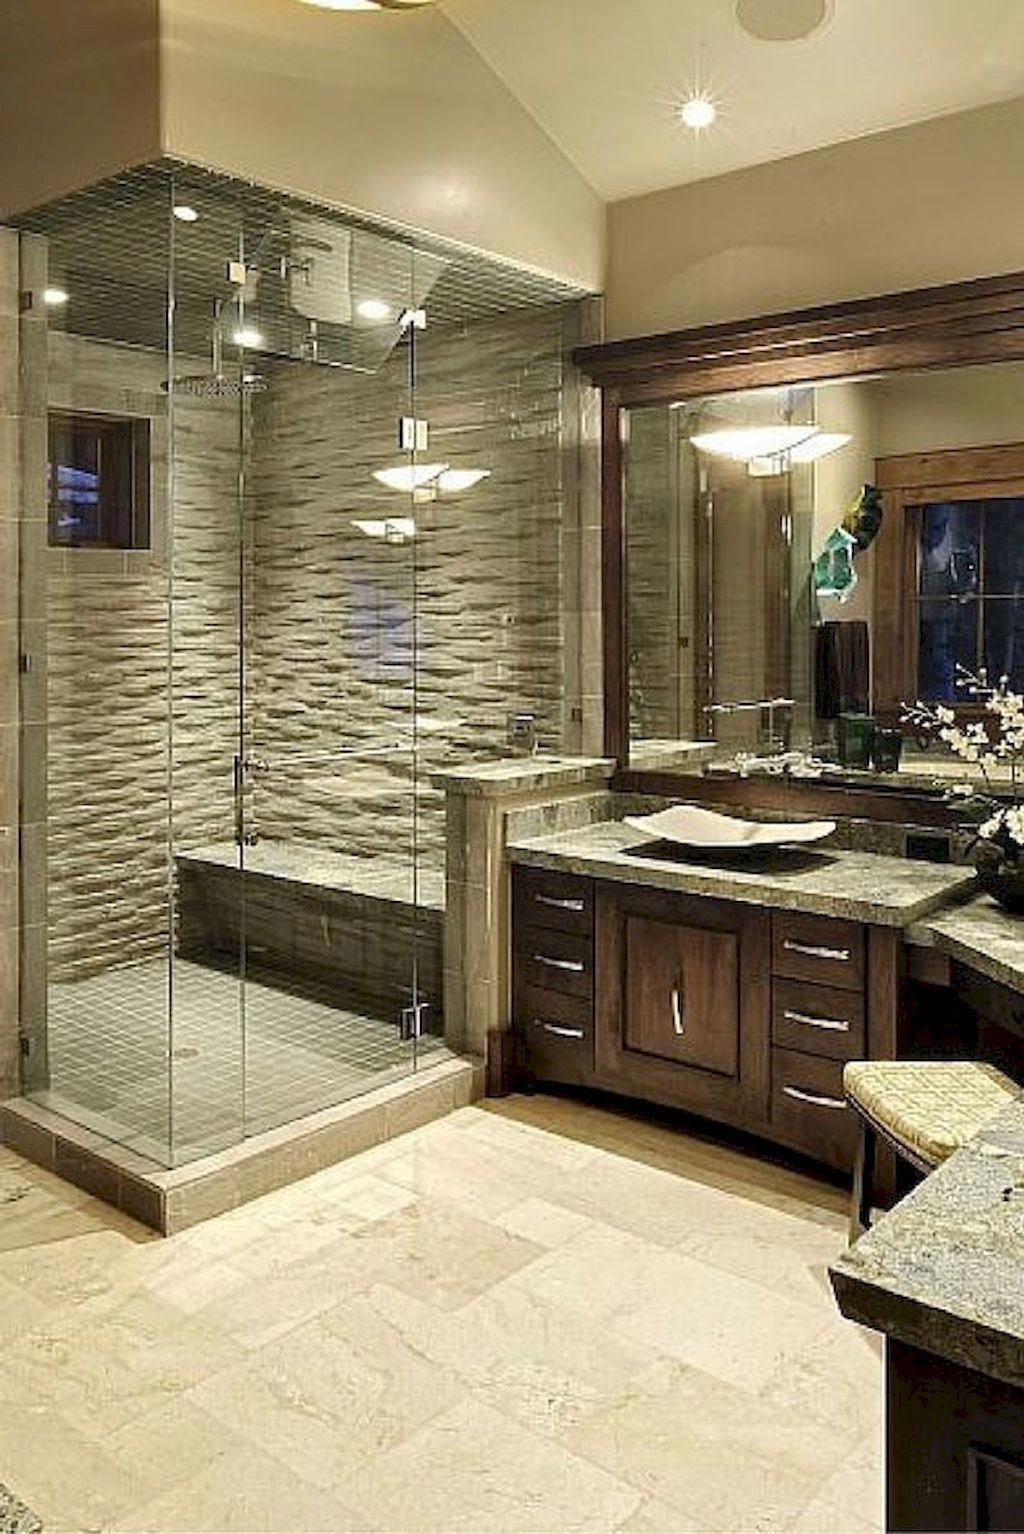 70 cool farmhouse bathroom makeover design ideas bathroom on beautiful farmhouse bathroom shower decor ideas and remodel an extraordinary design id=58645